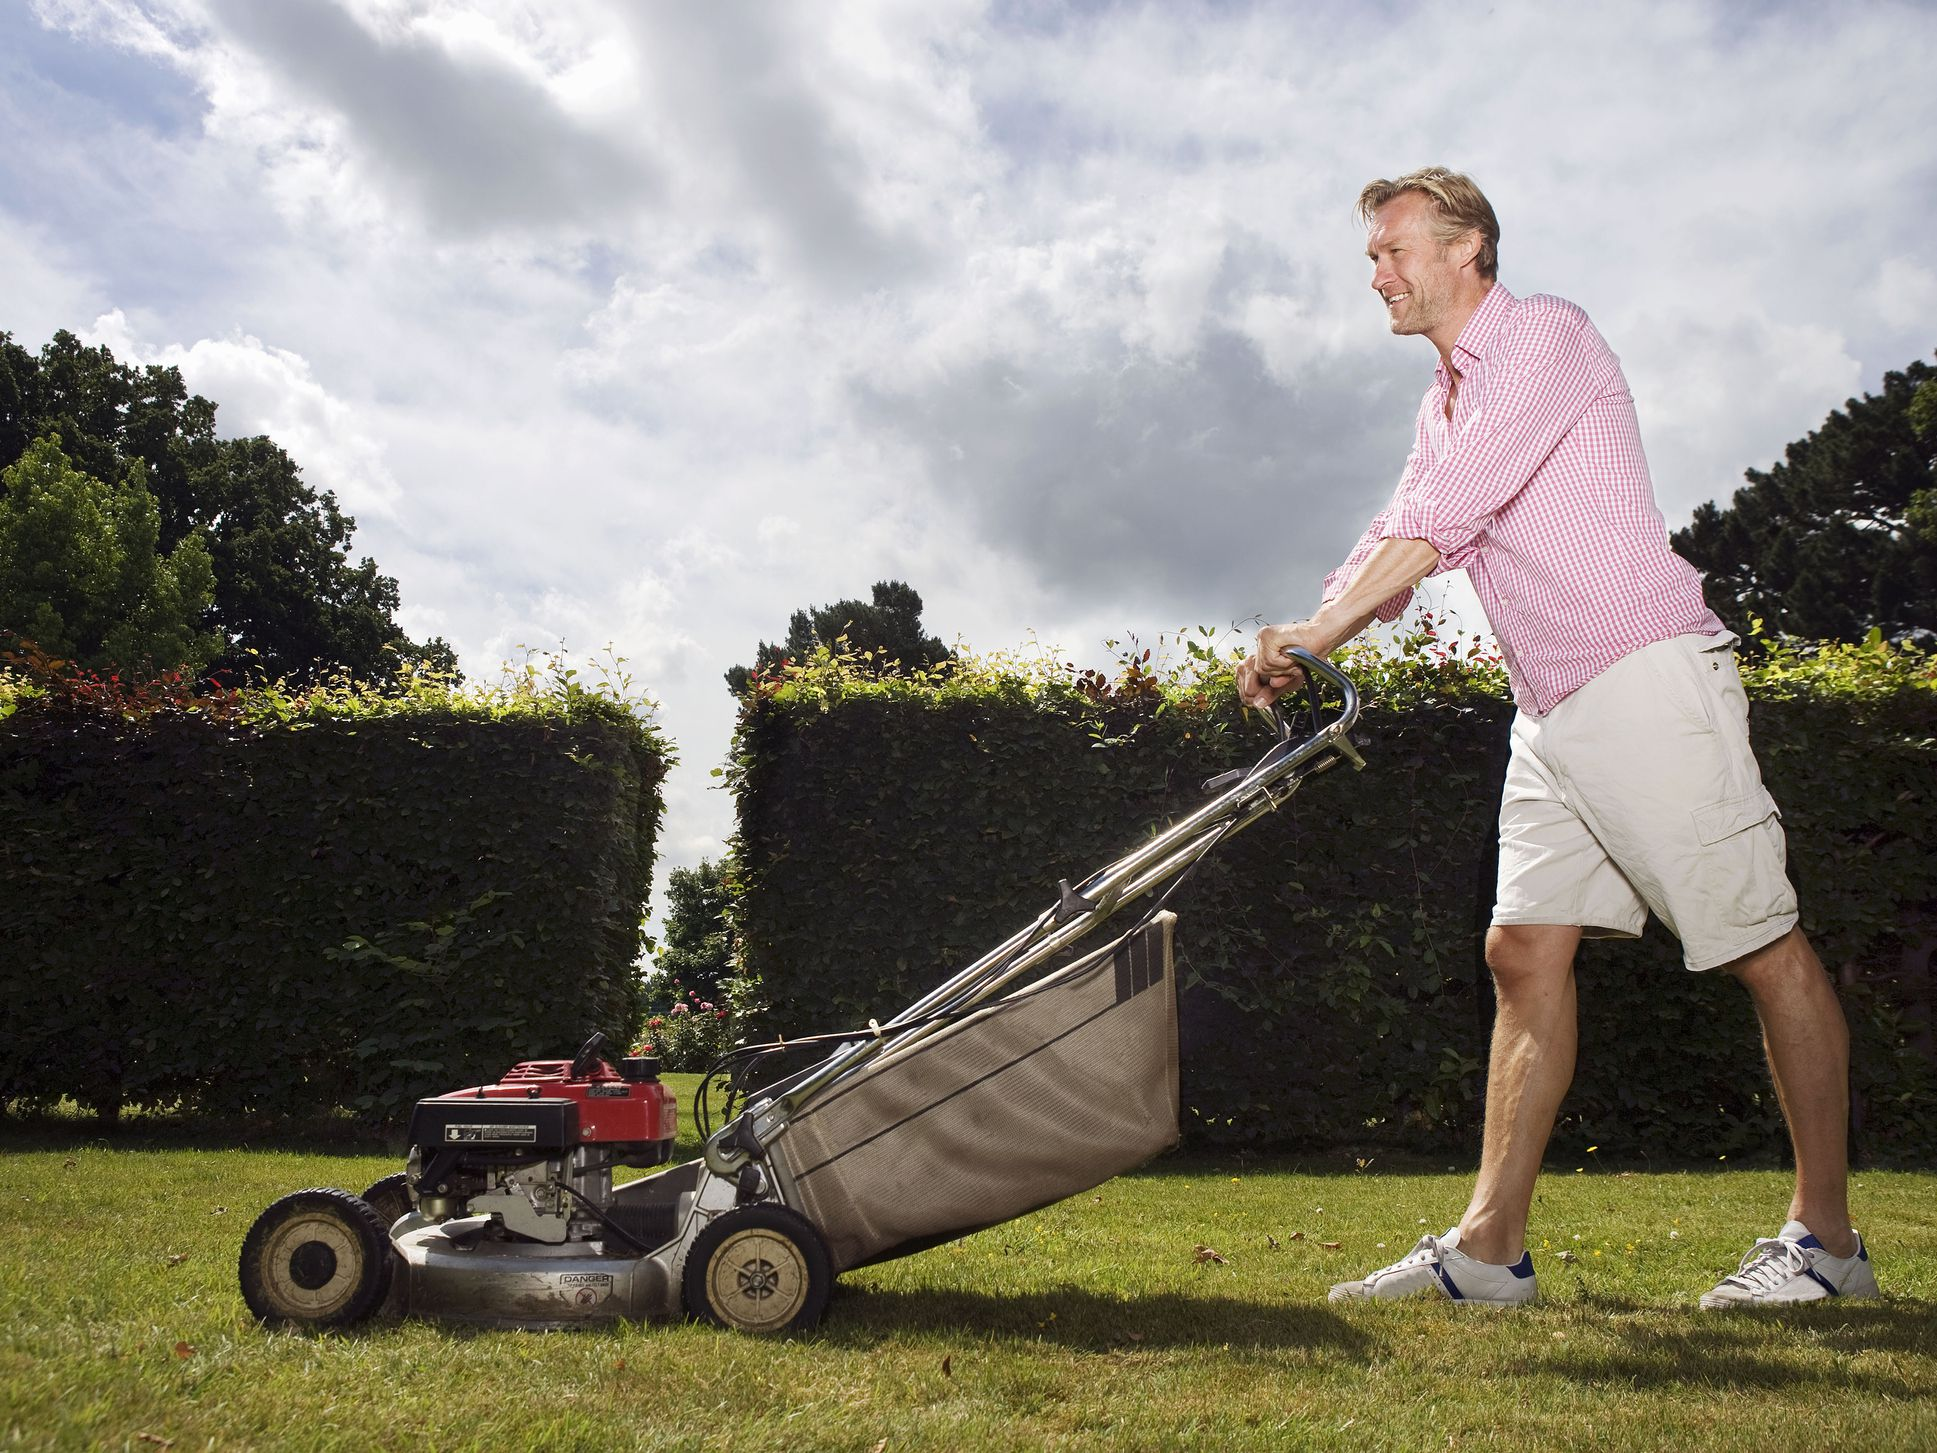 Best Battery Lawn Mowers of 2019